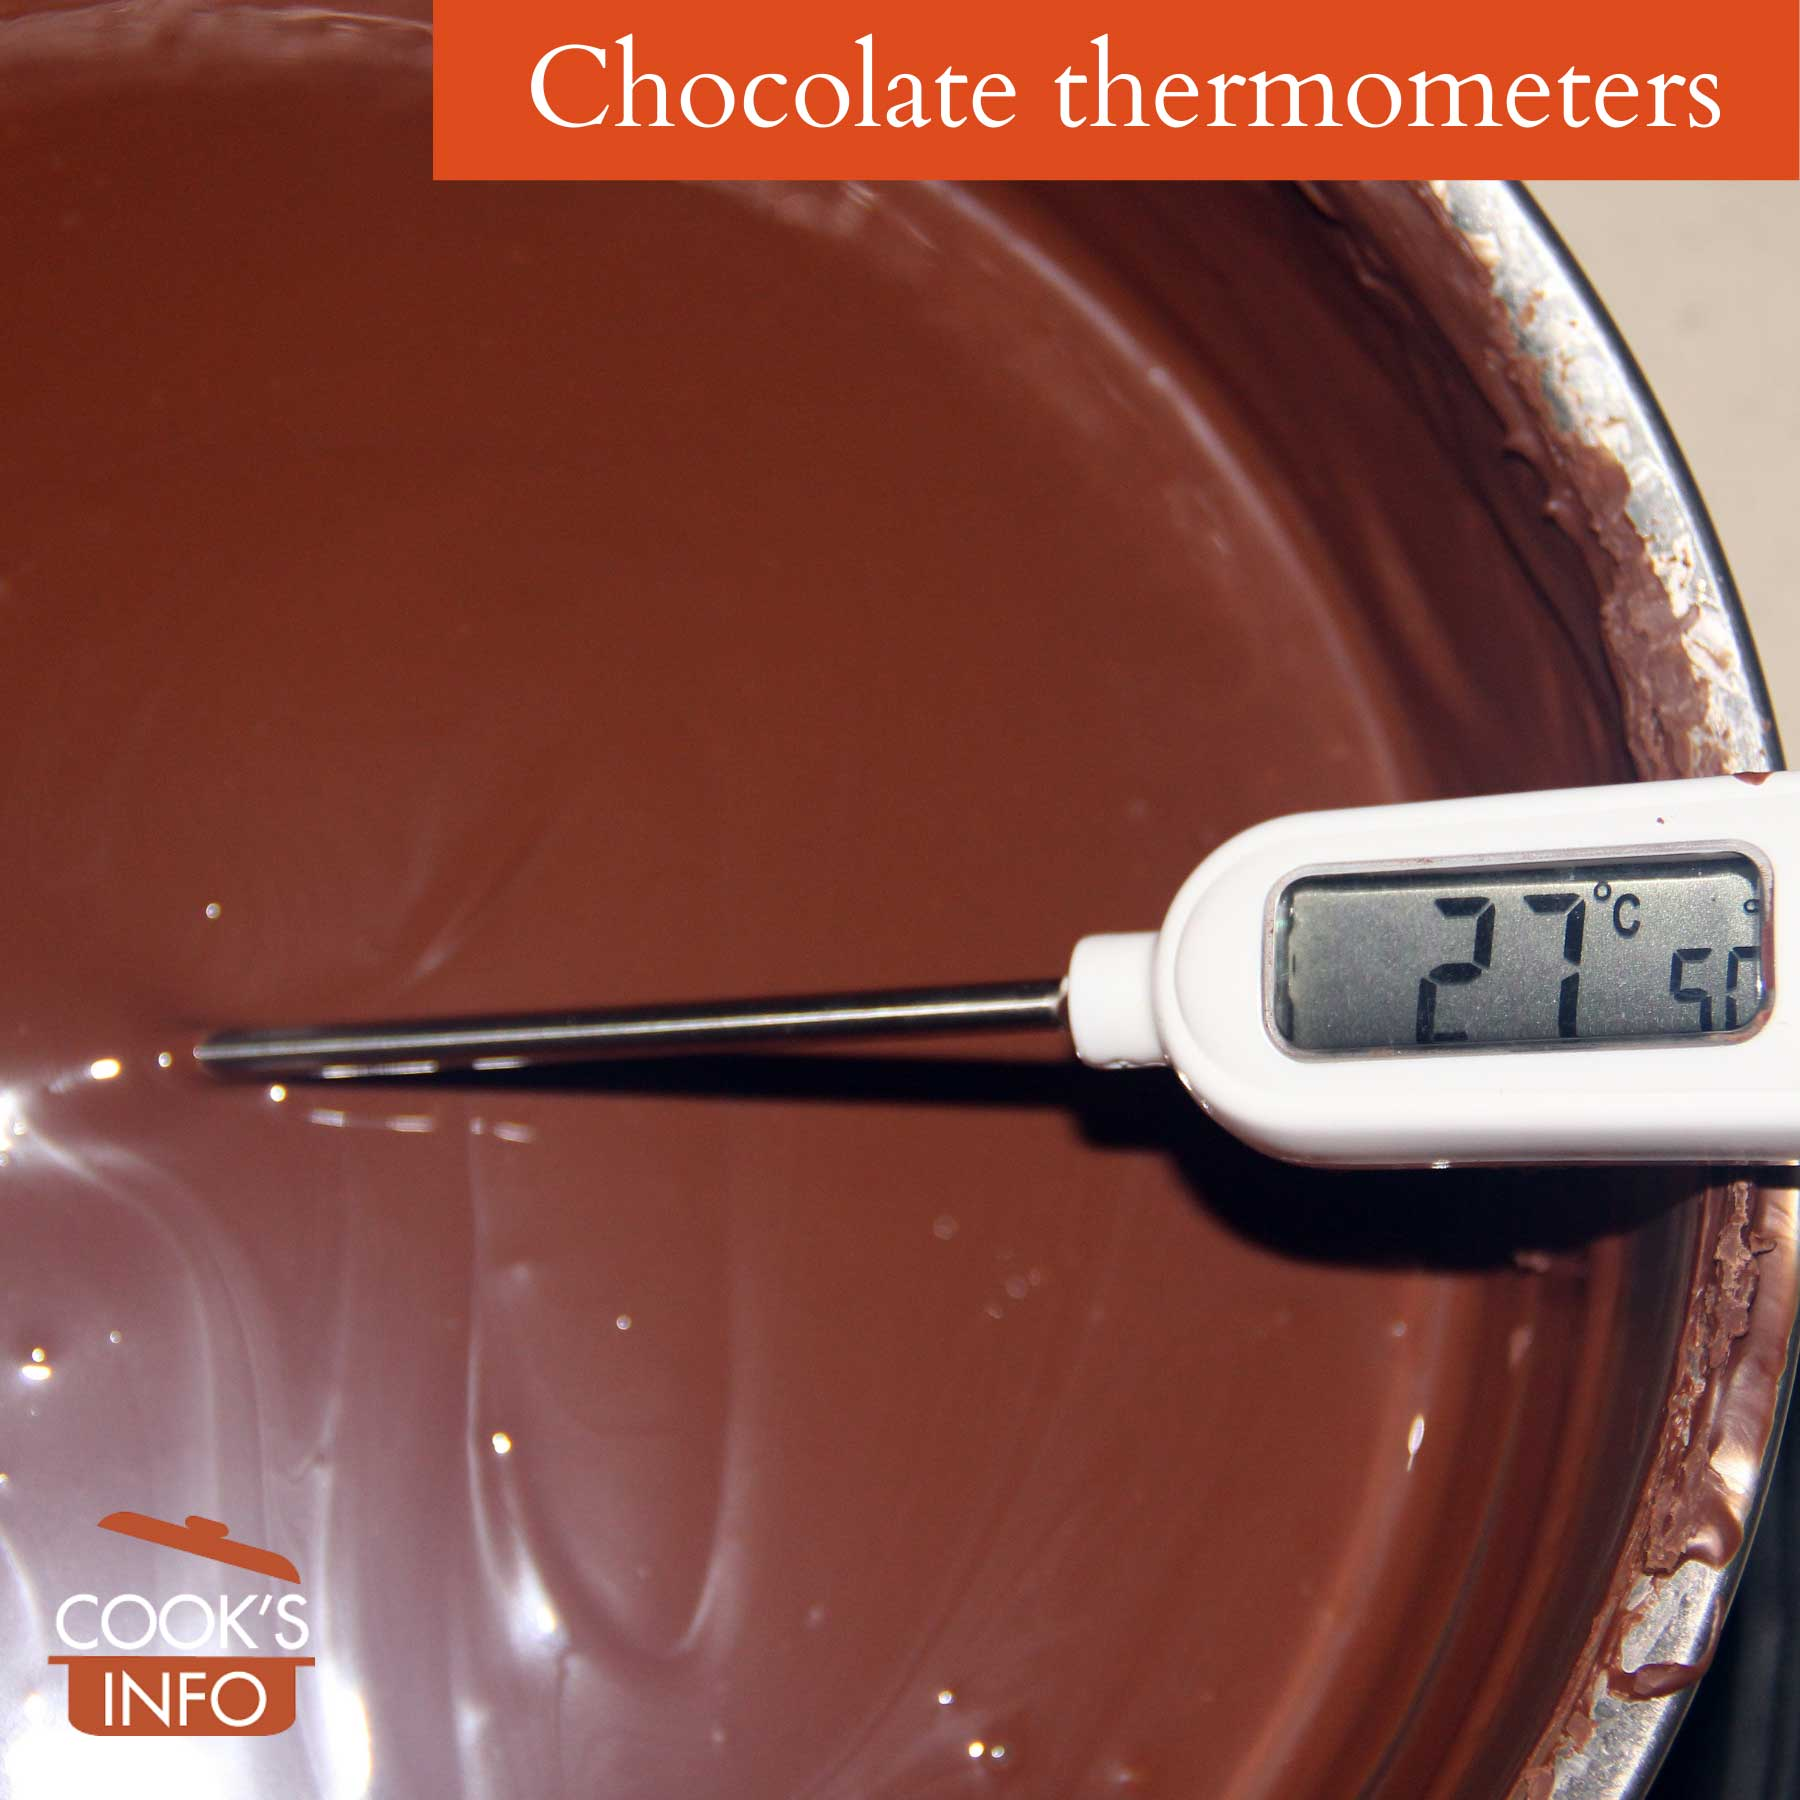 Taking the temperature of chocolate being melted